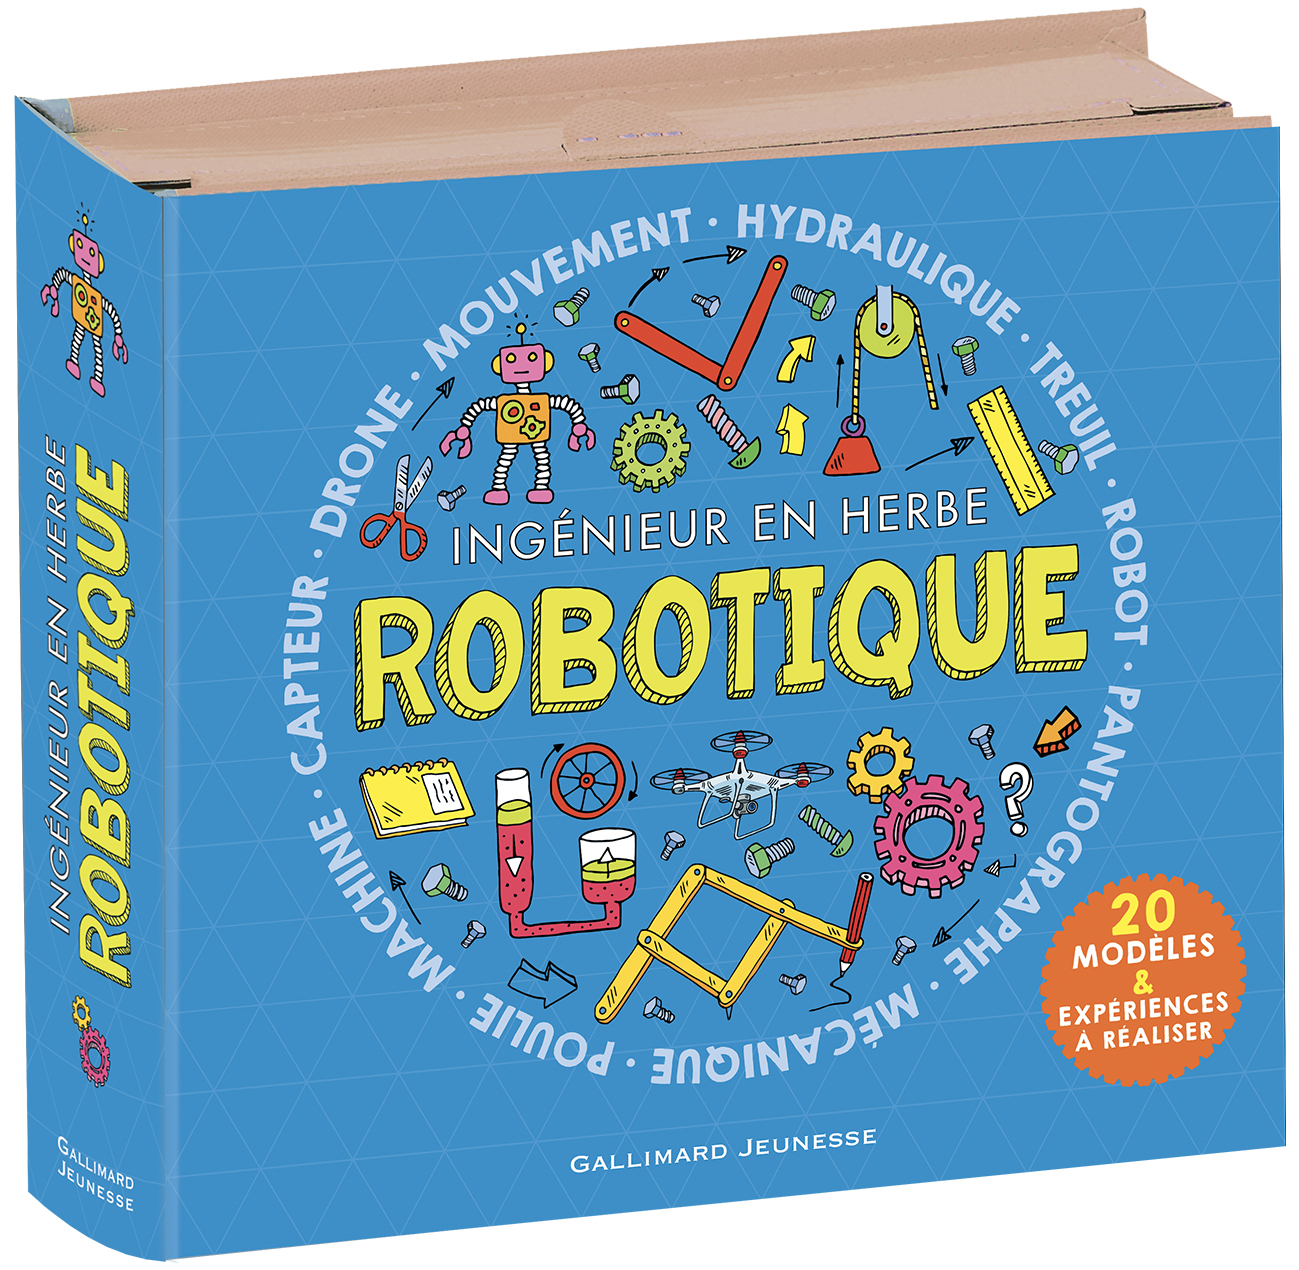 ROBOTIQUE - INGENIEUR EN HERBE